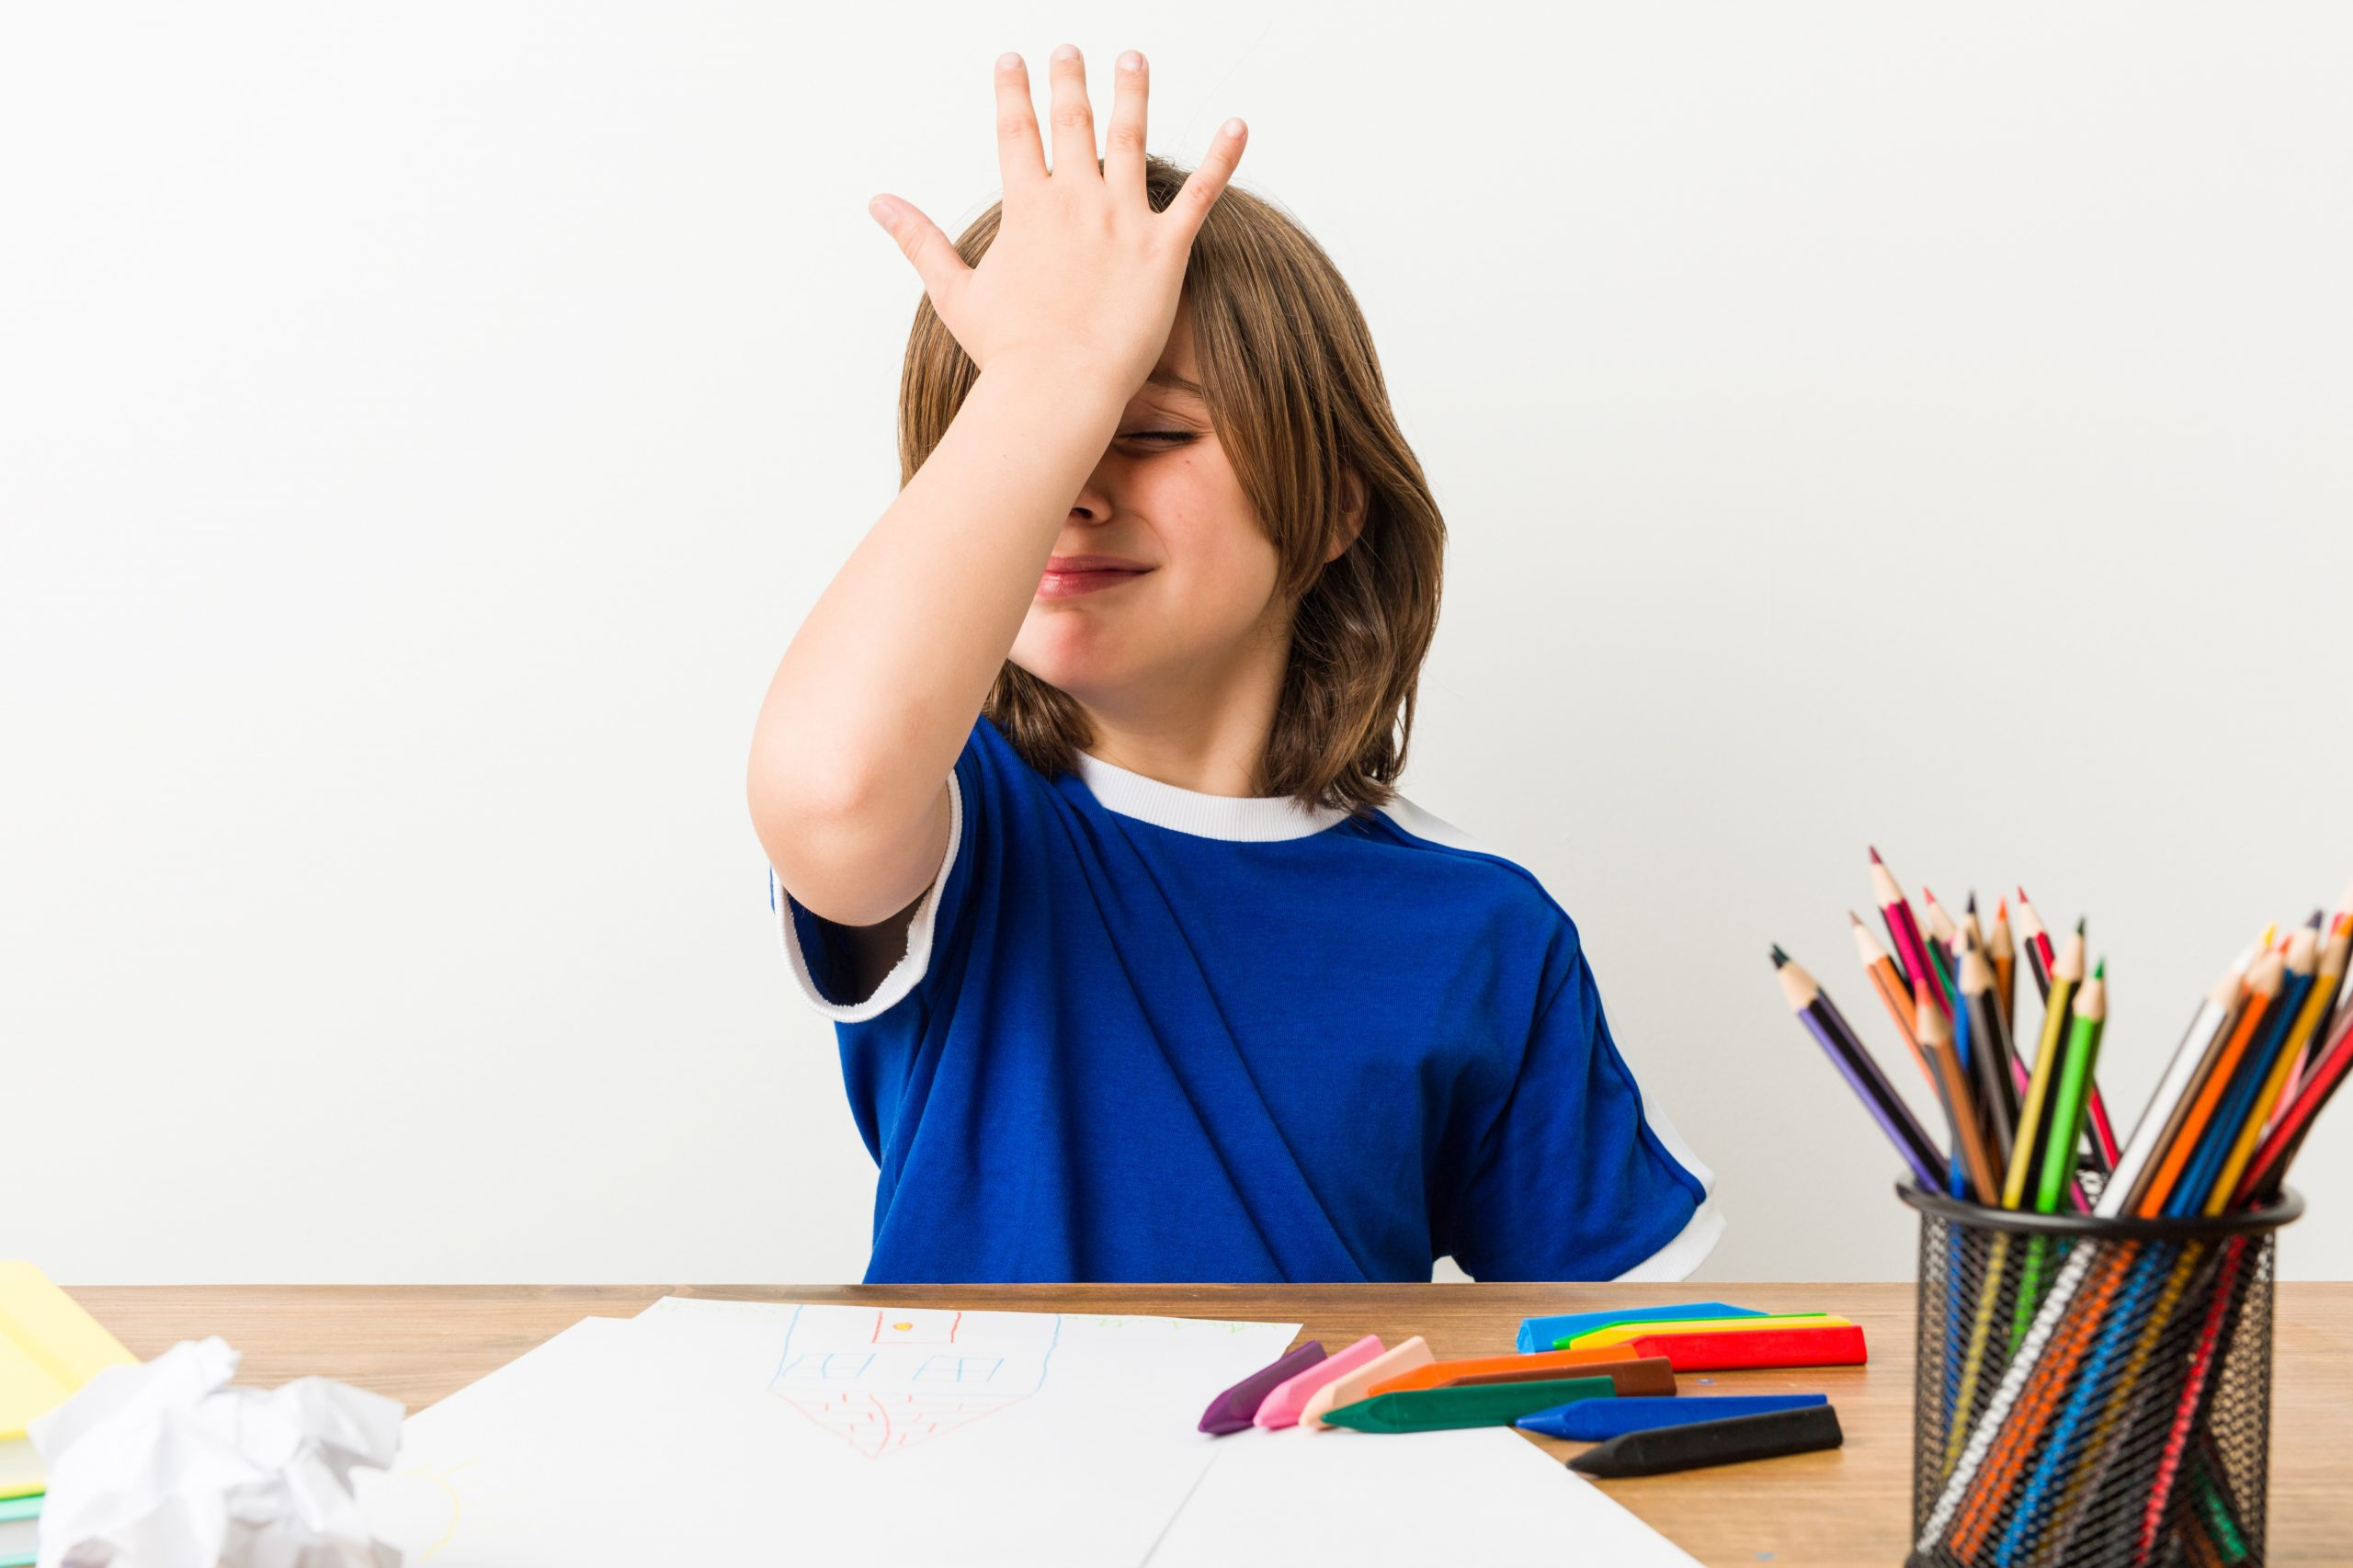 Upsoftskills - Learning from mistakes course for kids